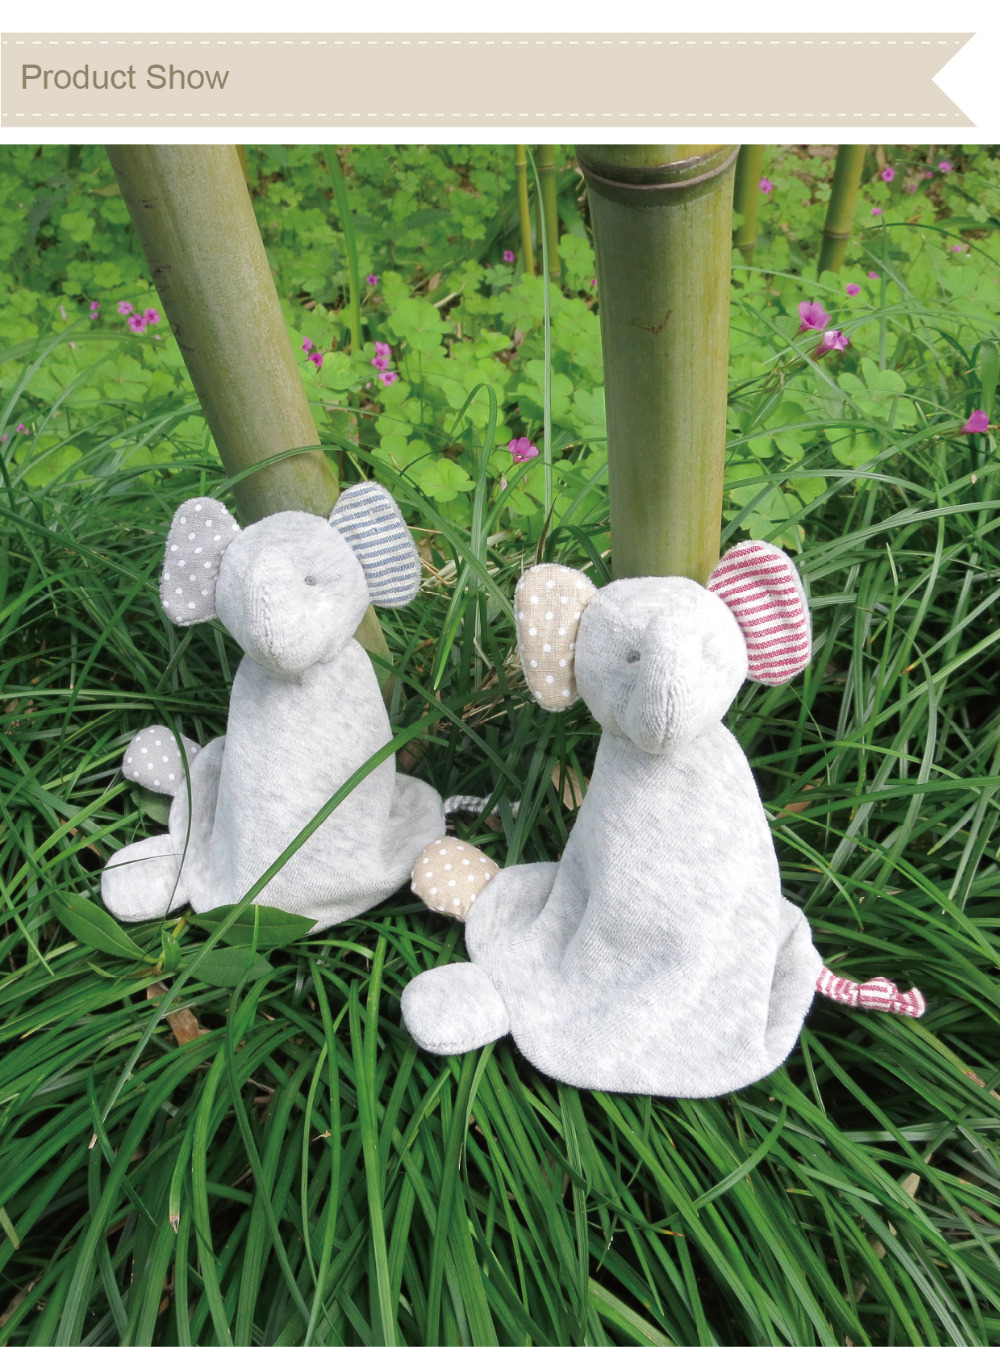 Discount 14cm high quality 100% hand-made gray elephant baby doll,cotton linen Eco material ,plush toys for birthday party gift(China (Mainland))